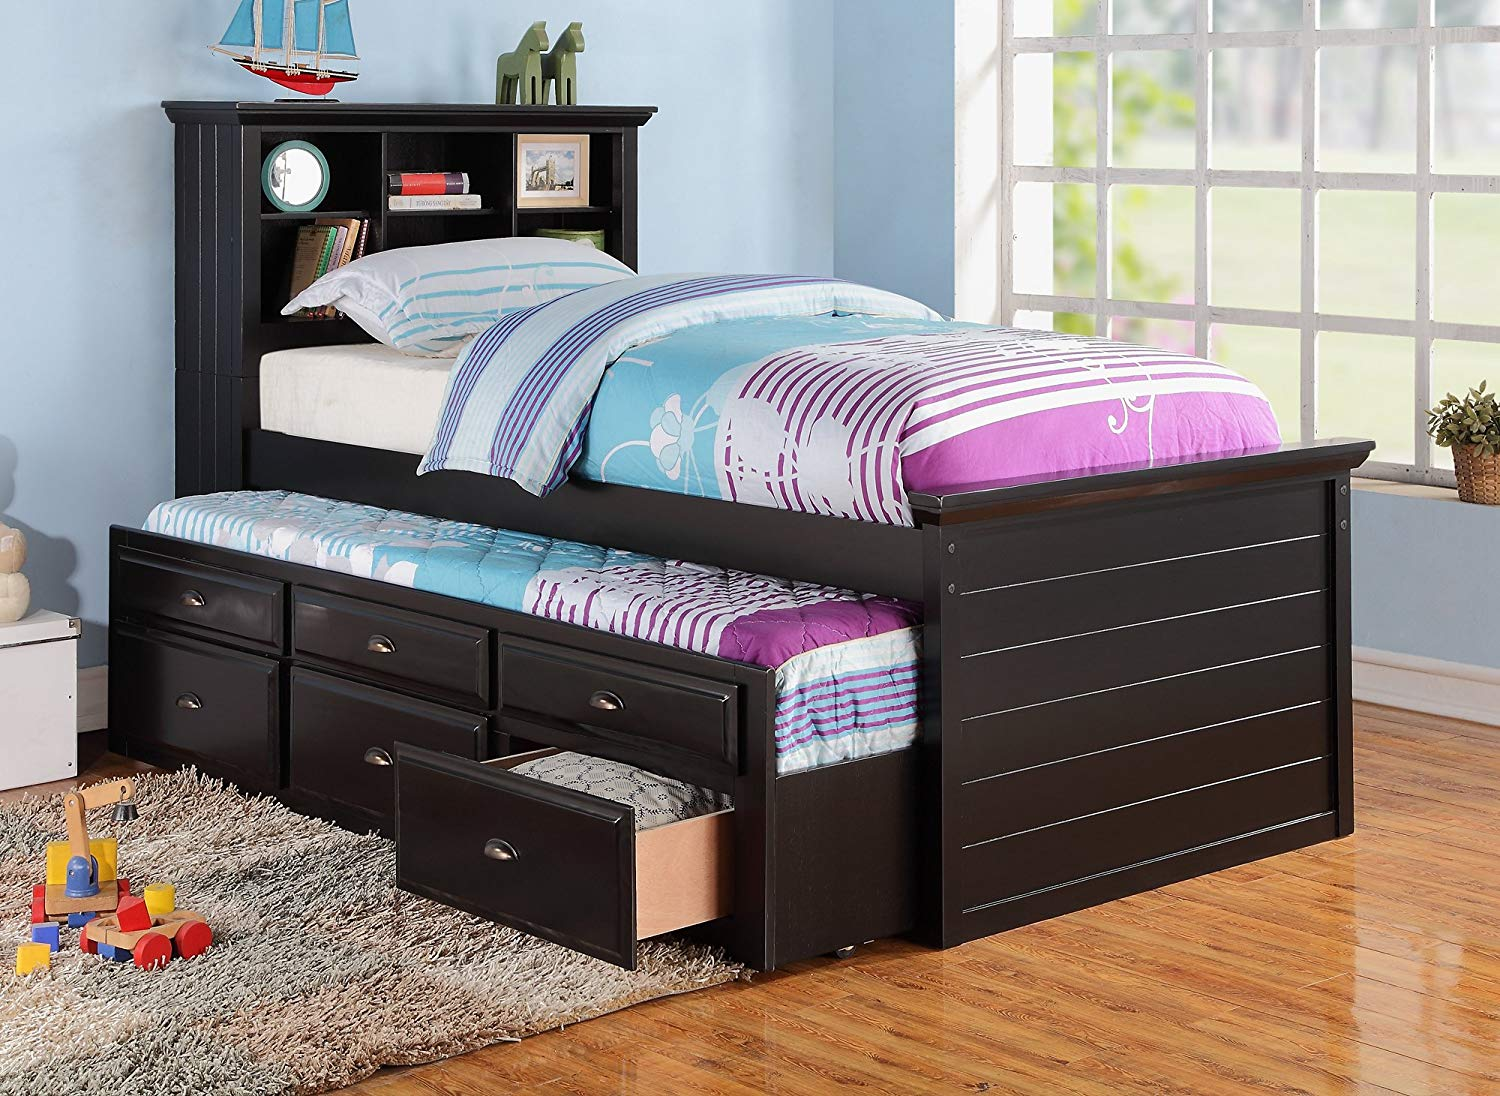 Picture of: Black Twin Bed With Trundle And Storage